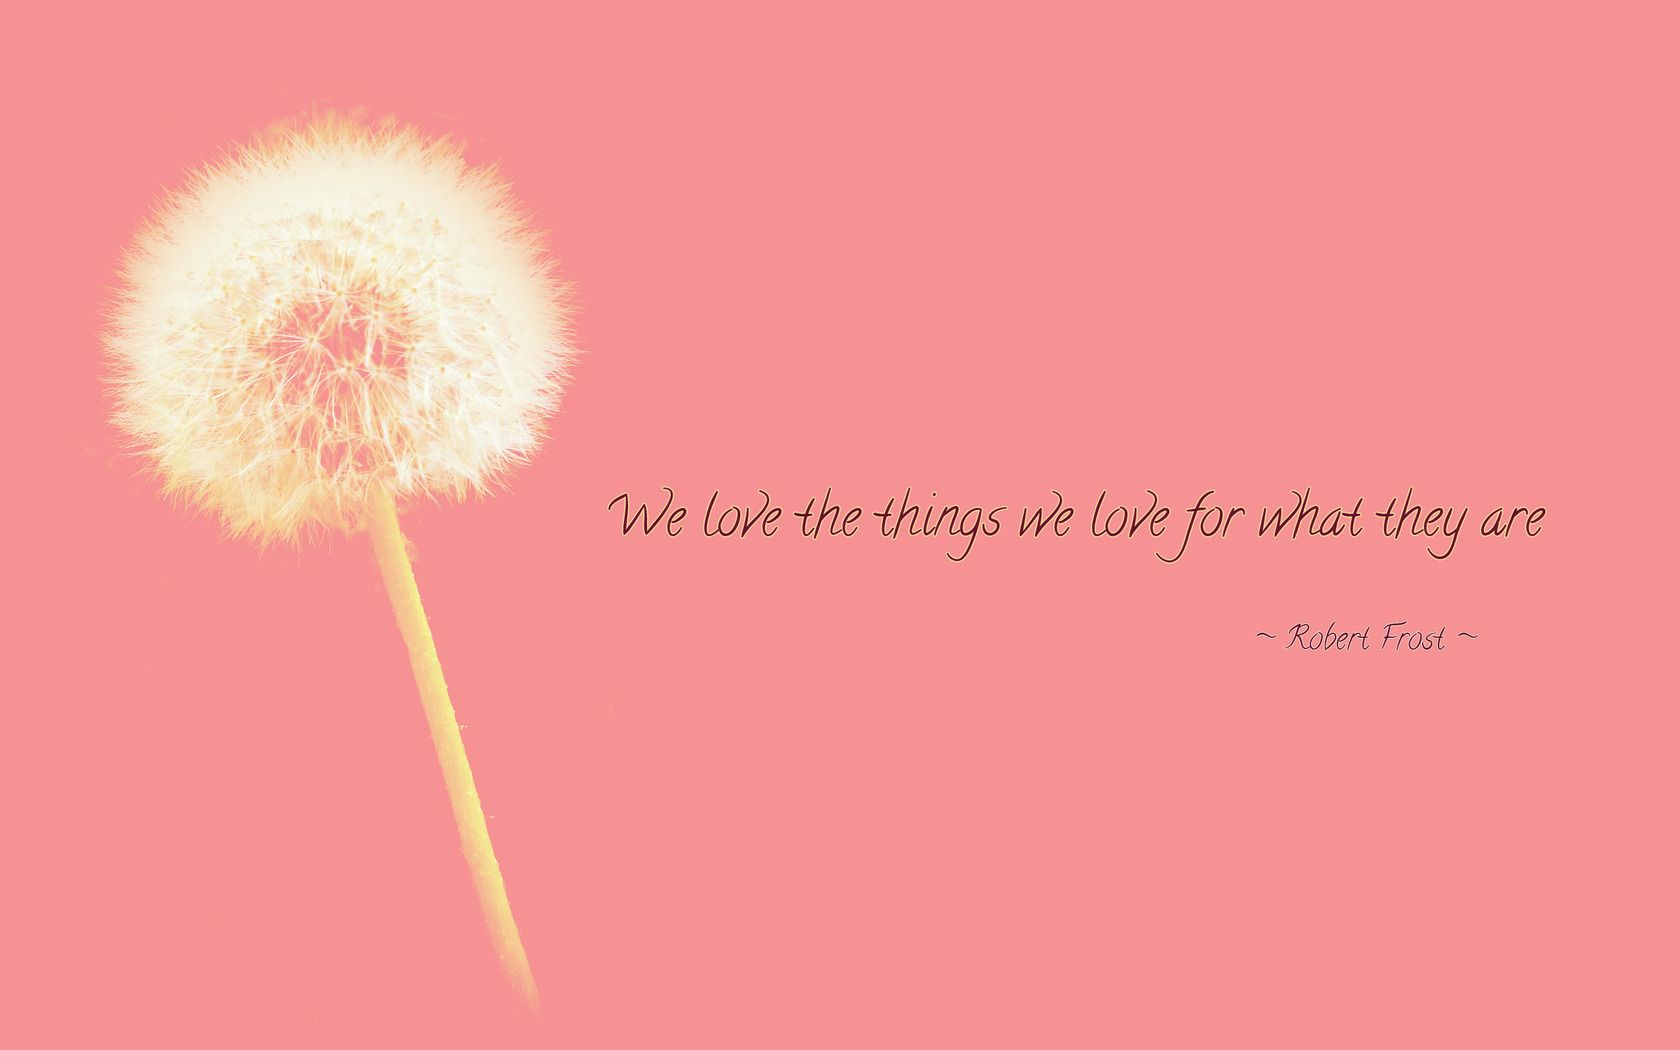 One Of Our Favorite Robert Frost Quotes!